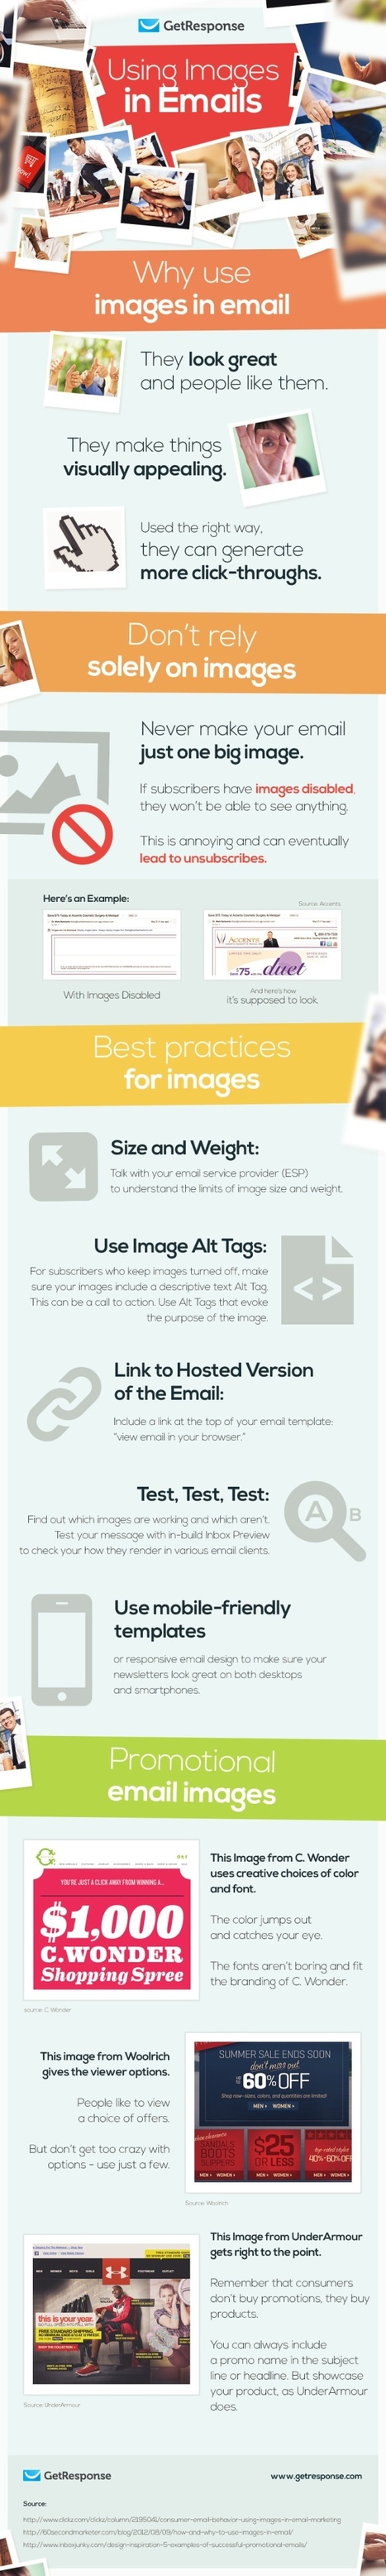 Using Images in Email #Infographic | Commentrix | Scoop.it